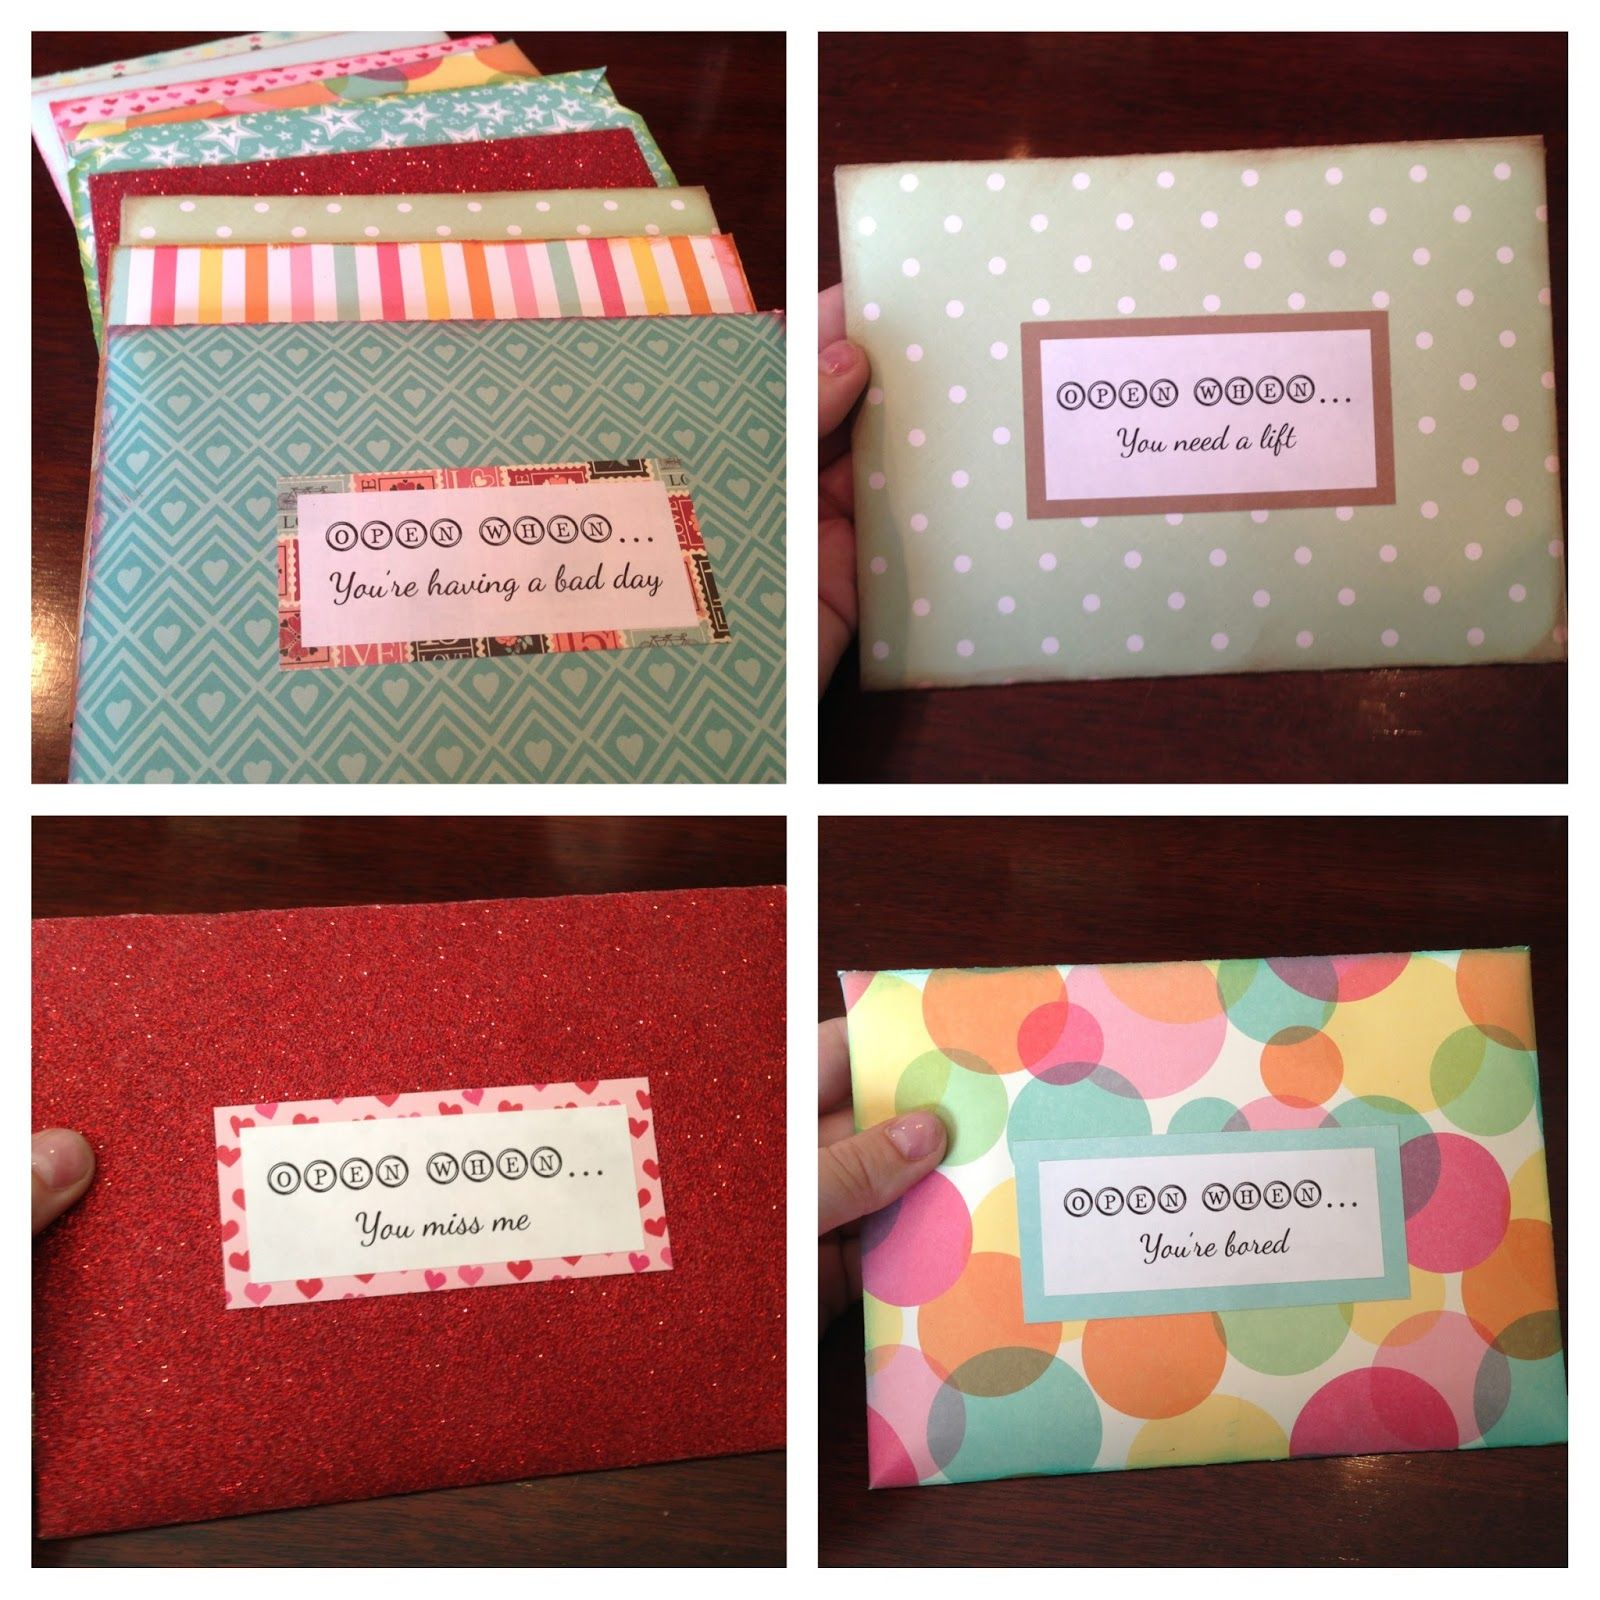 Open When Envelopes For Your Best Friend: I Solemnly Swear That I Am Up To No Good: Open When